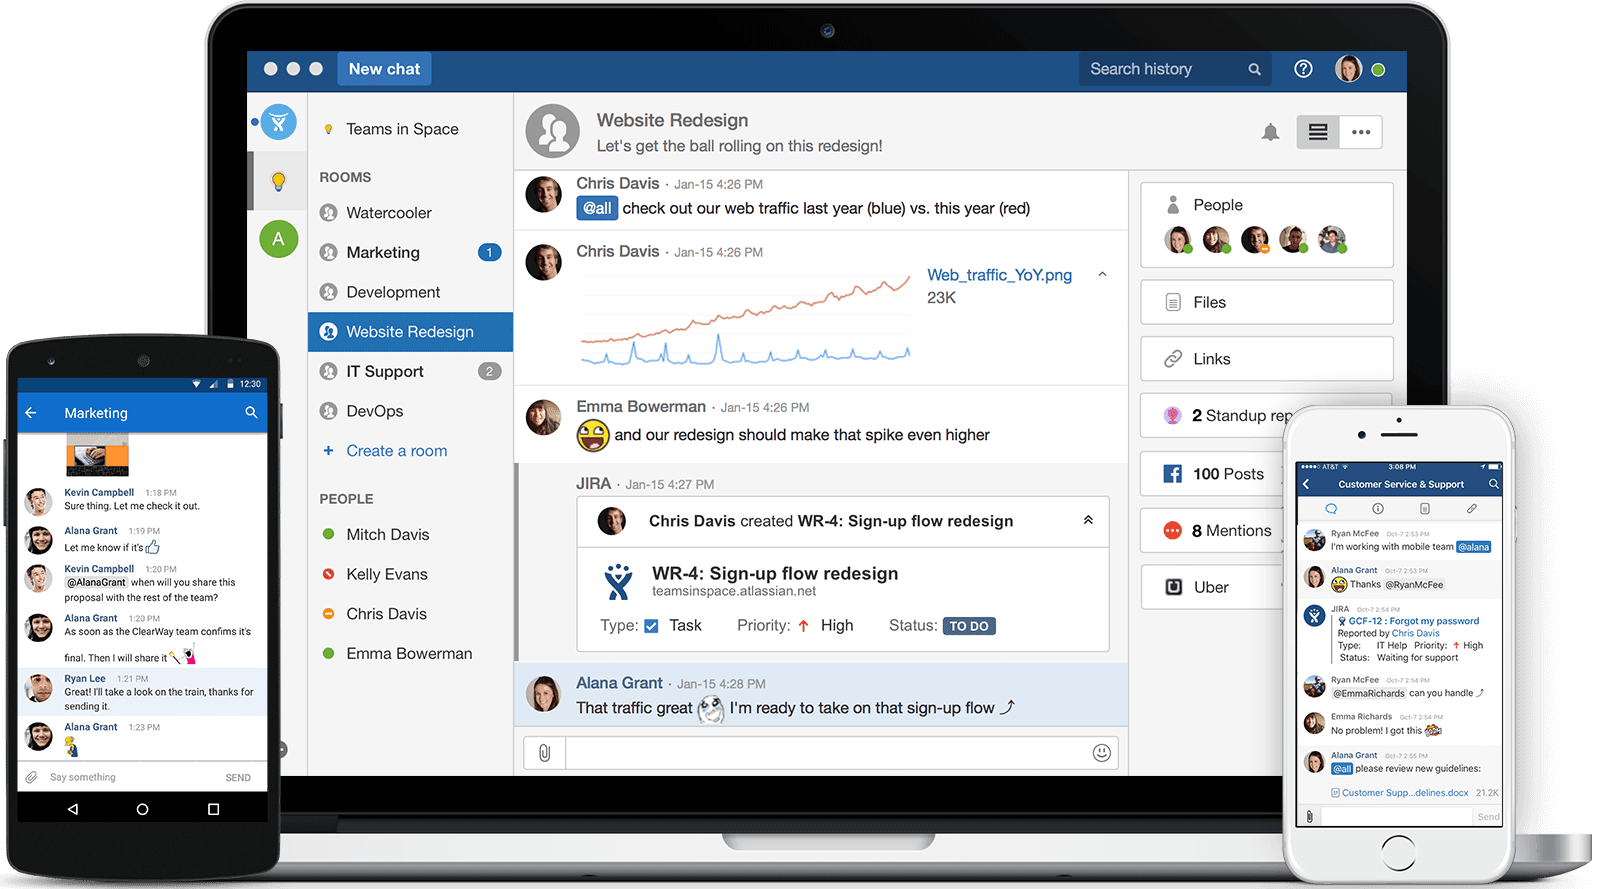 HipChat for Mac - Download